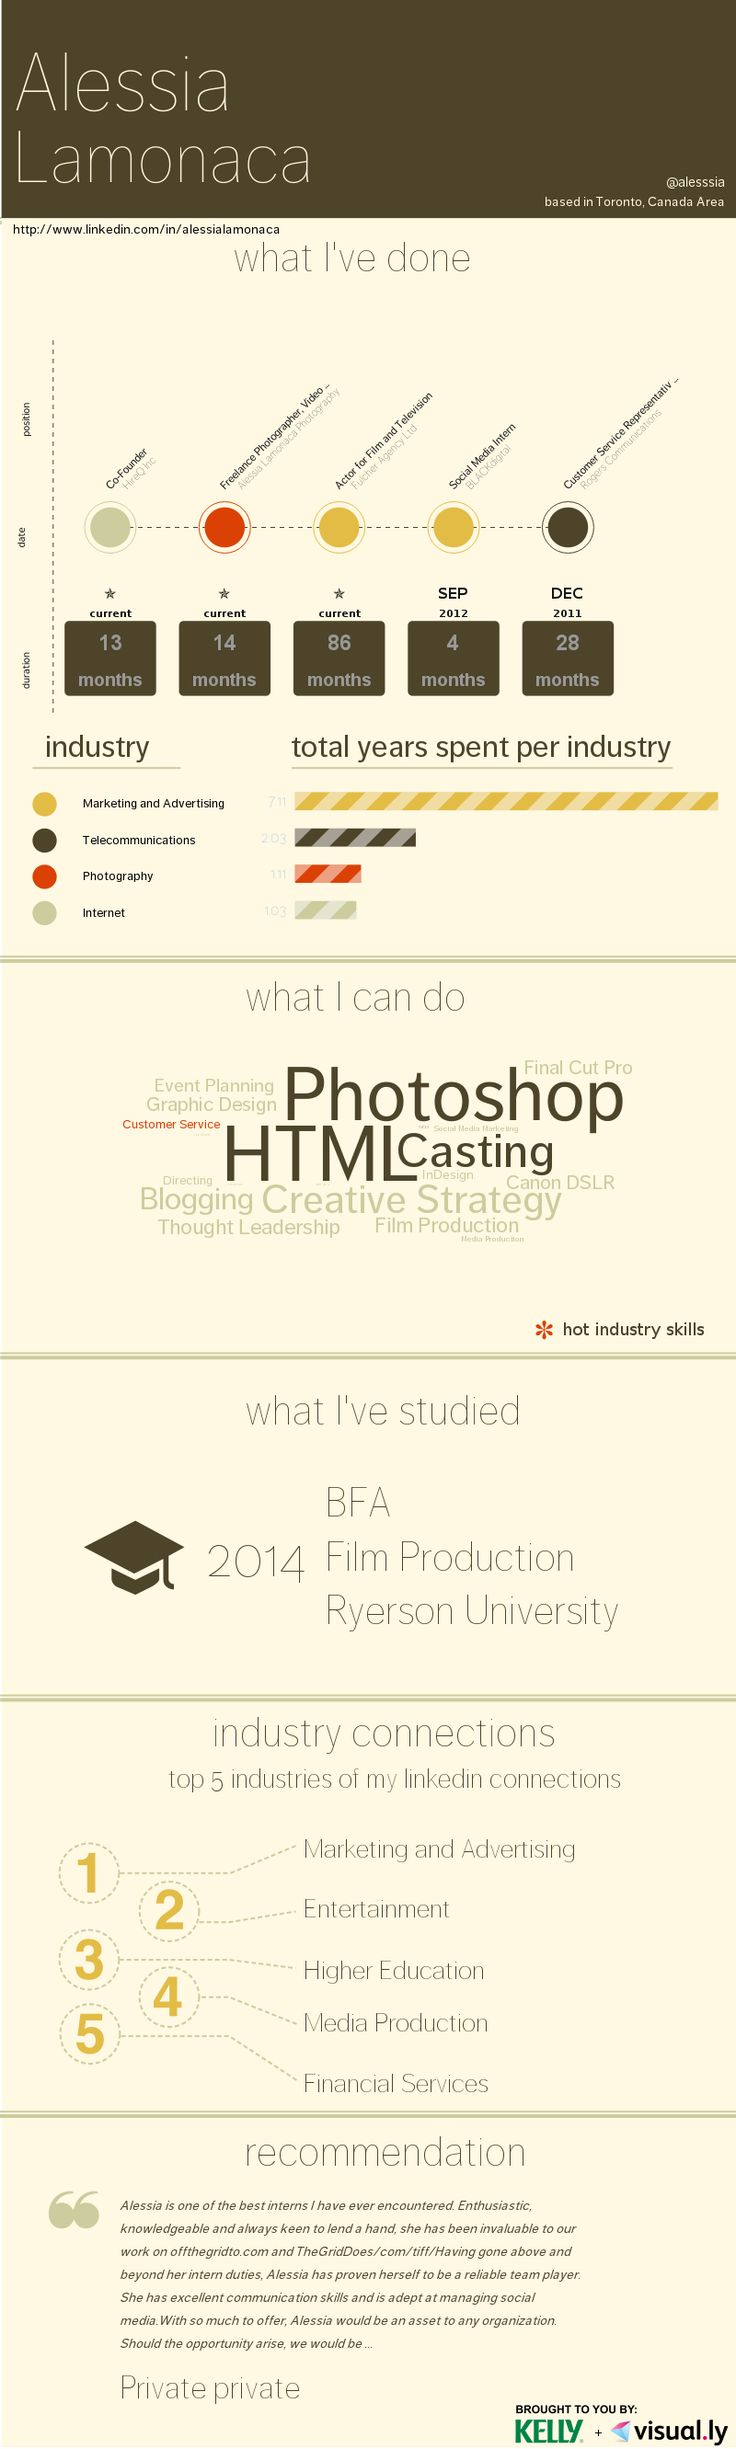 My #resume created on Visual.ly - Alessia Lamonaca